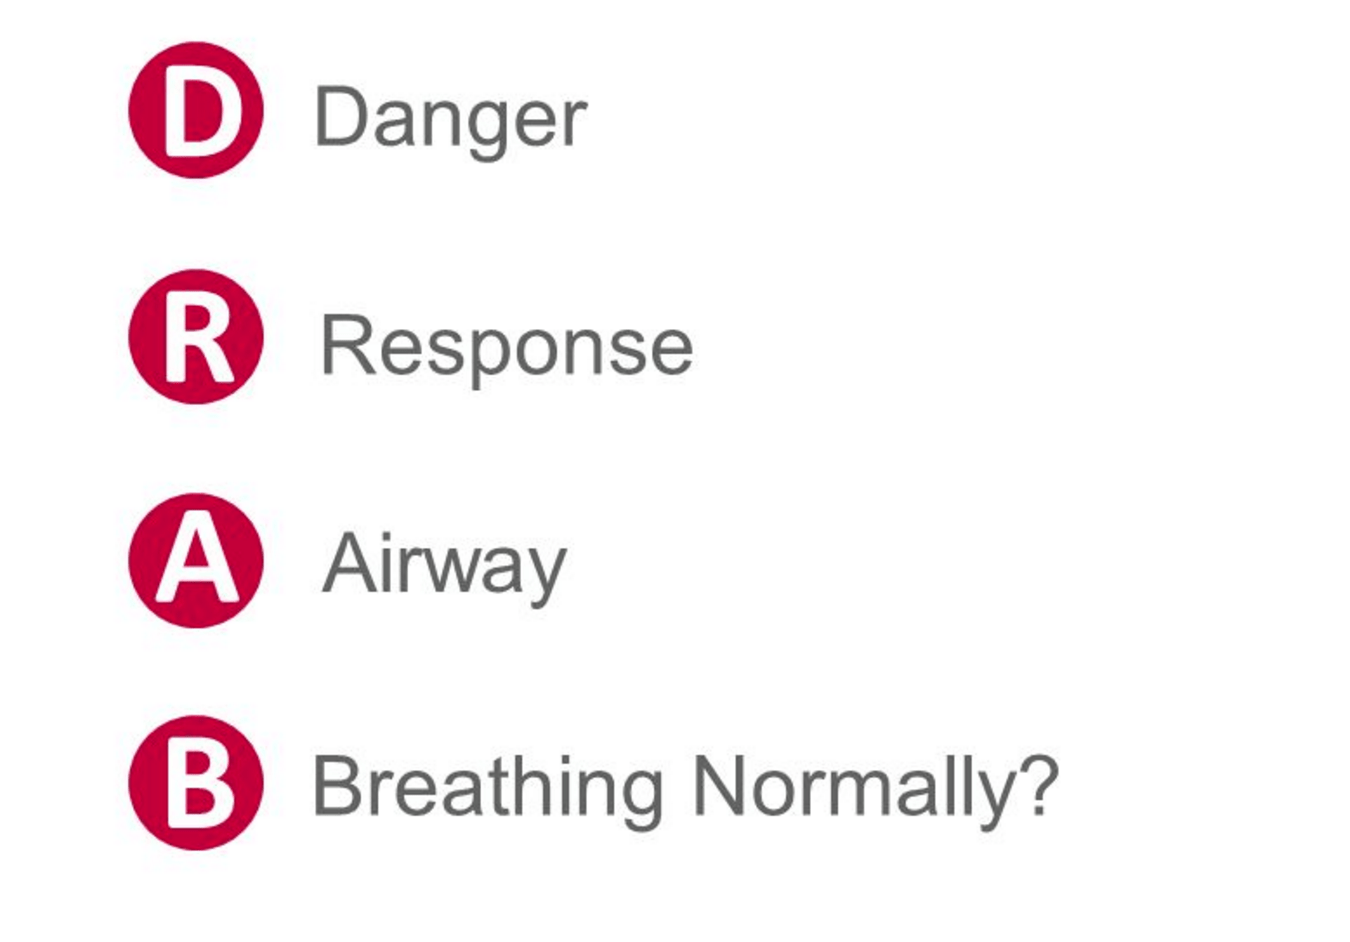 The Drab Emergency Action Plan Cpr Test